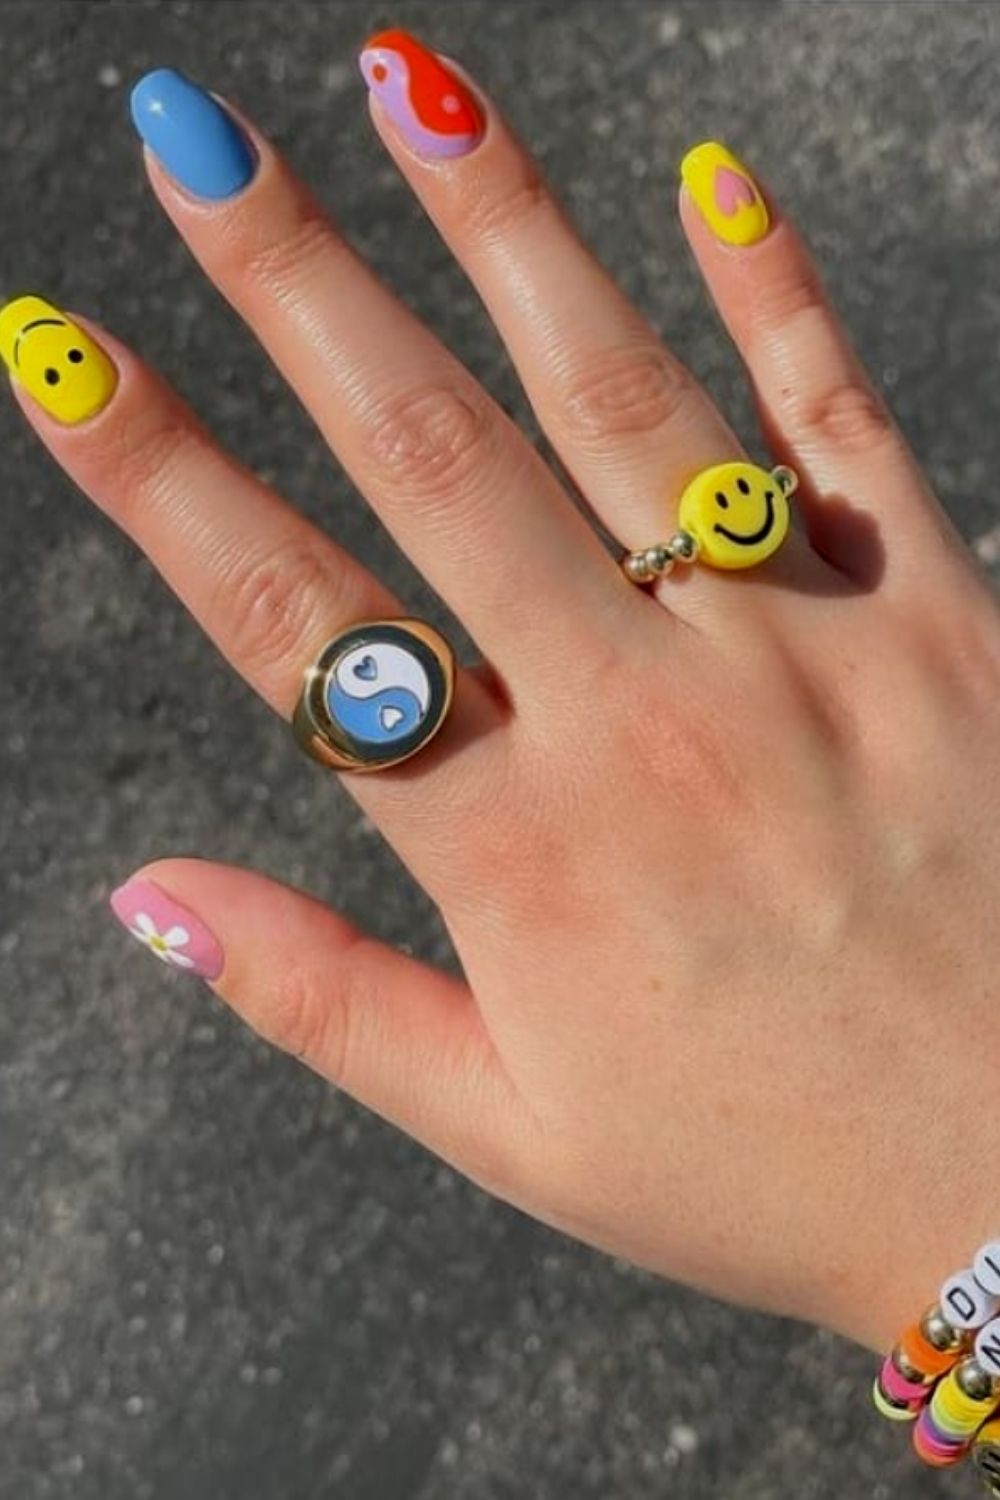 Short acrylic nails designs with heart and smiling